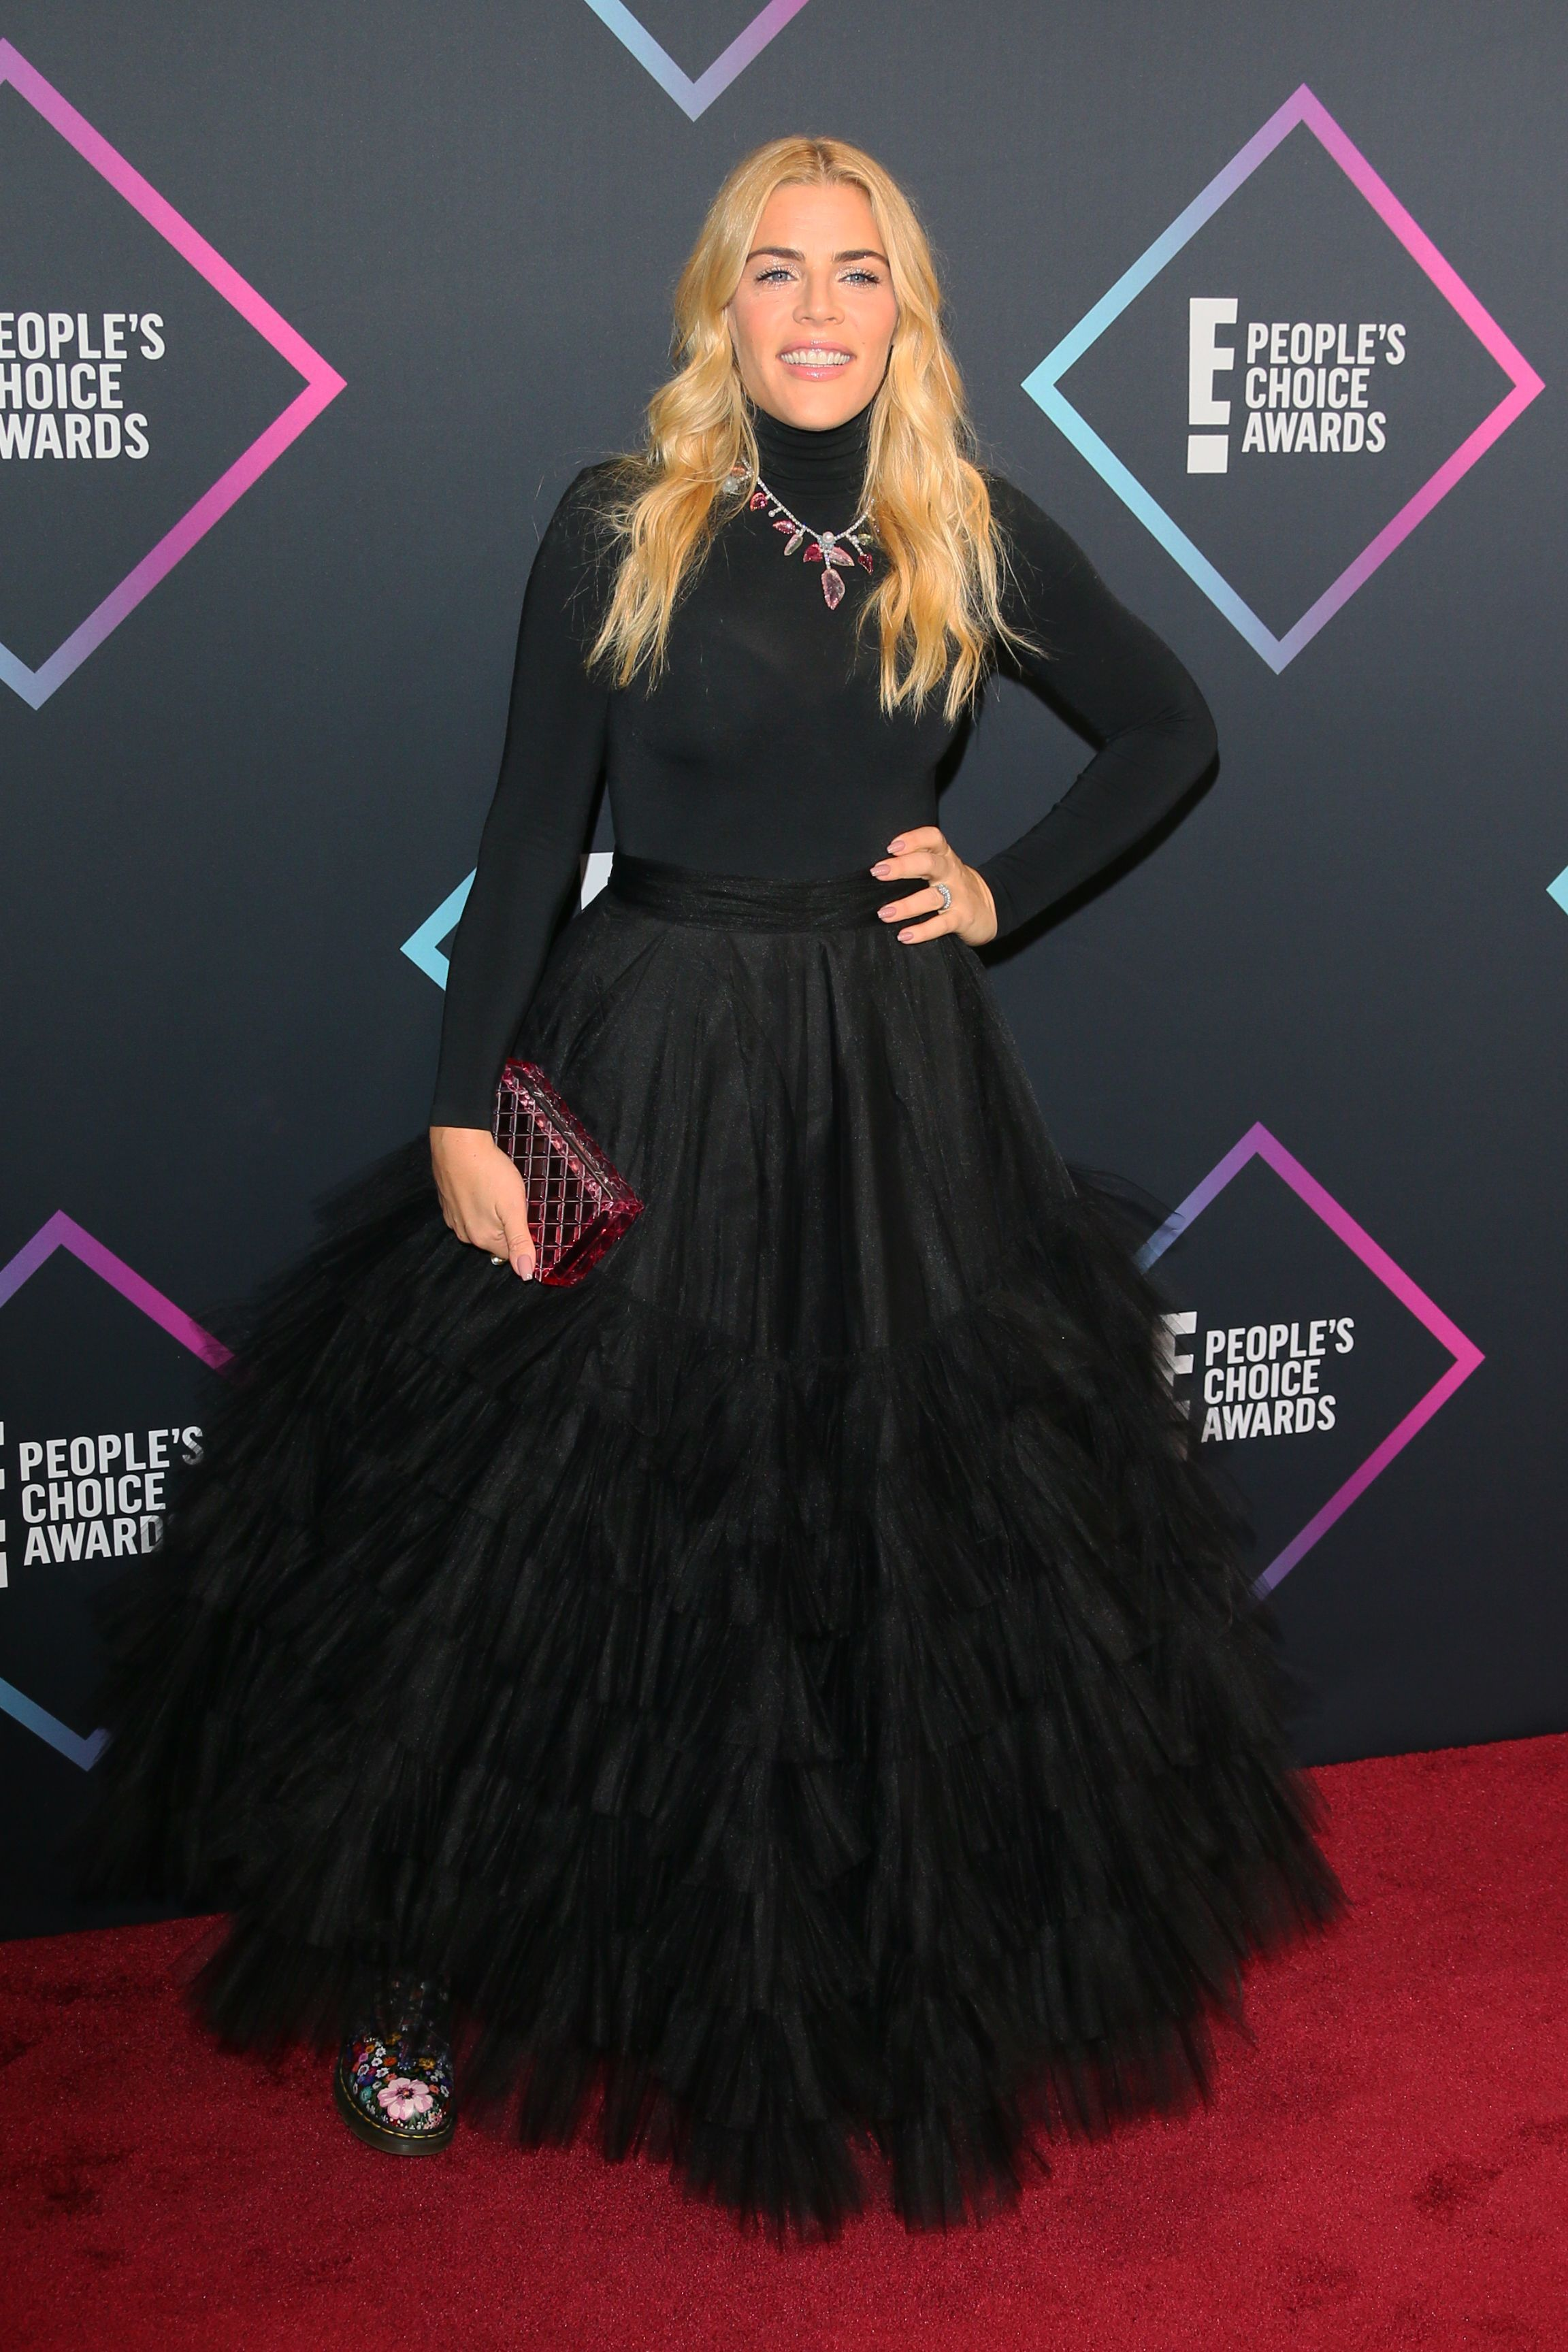 Fashion style Choice peoples awards red carpet for lady